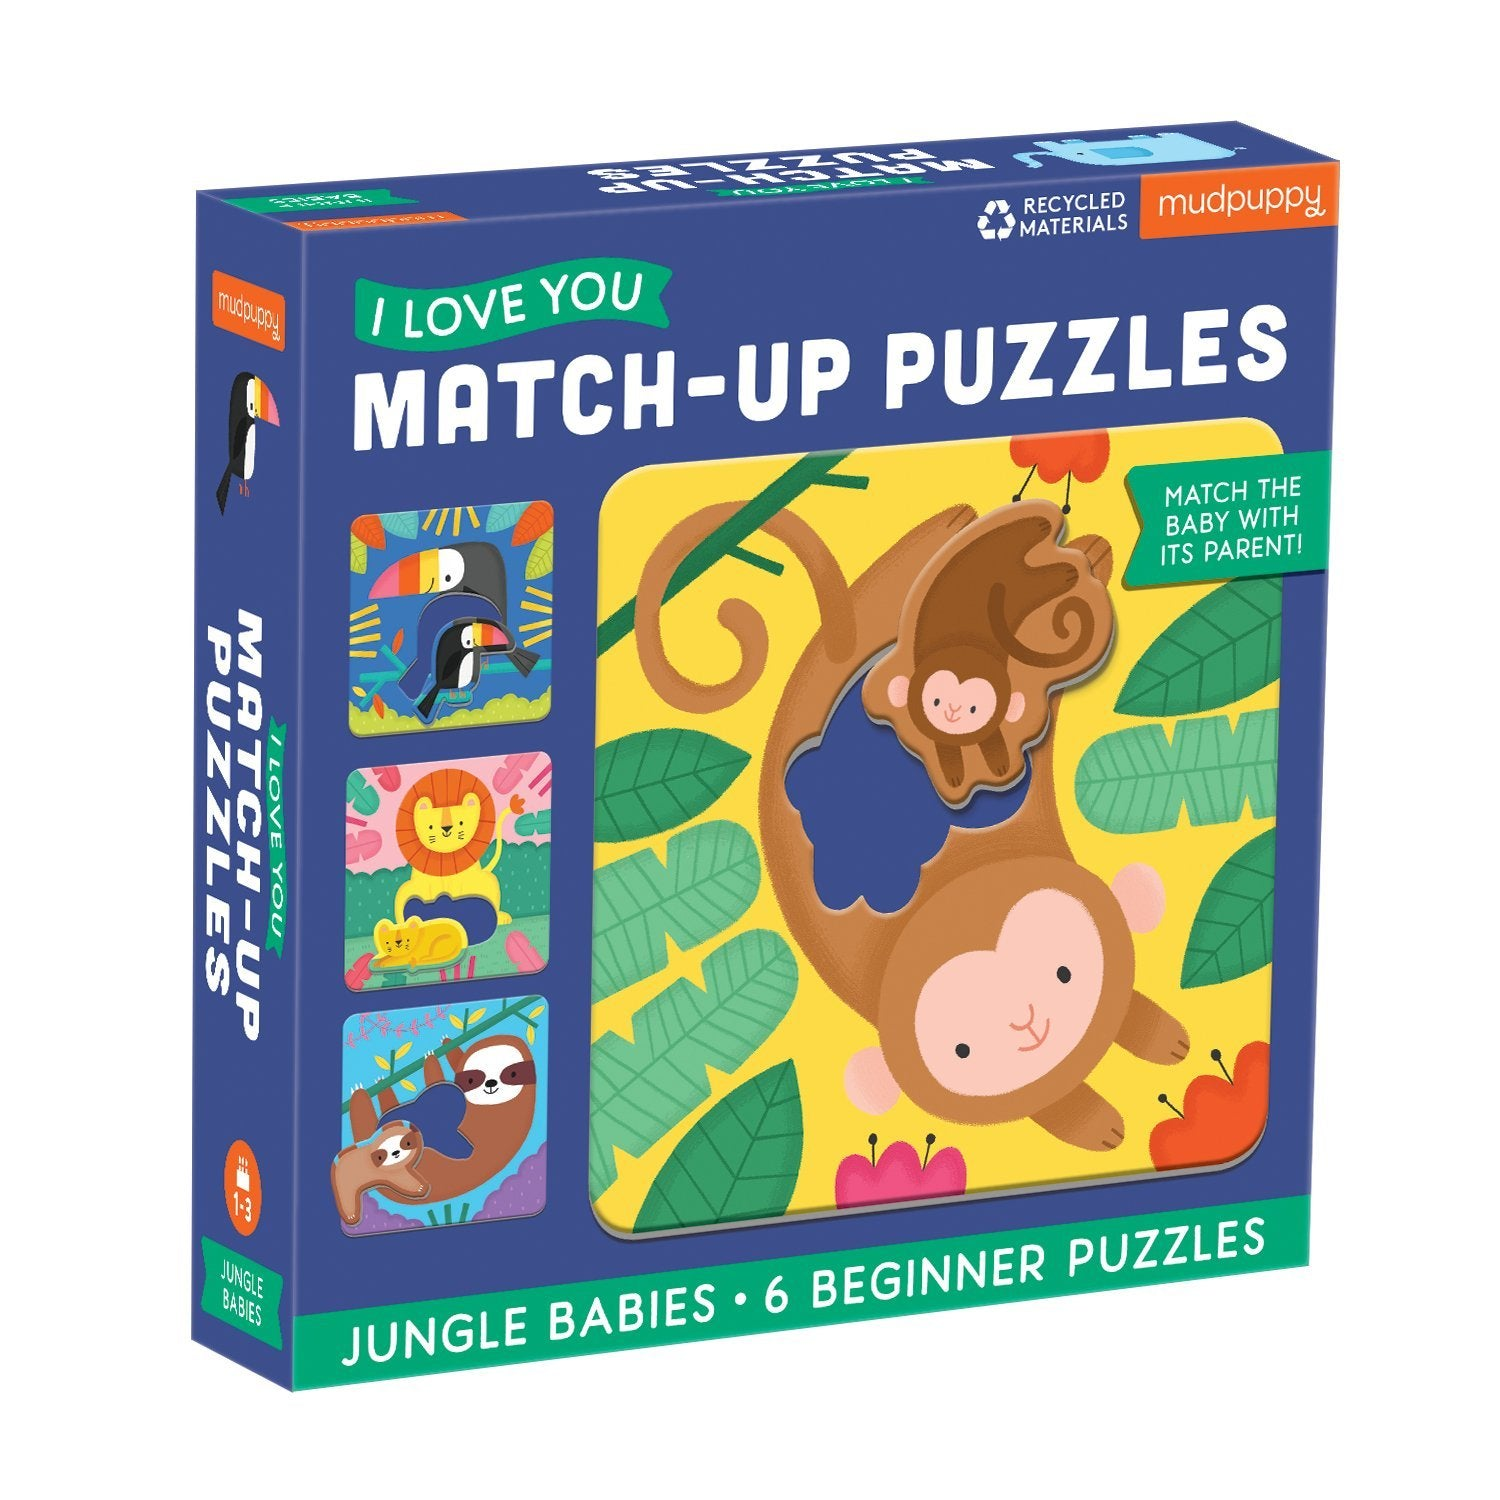 Jungle Babies Match-Up Puzzles